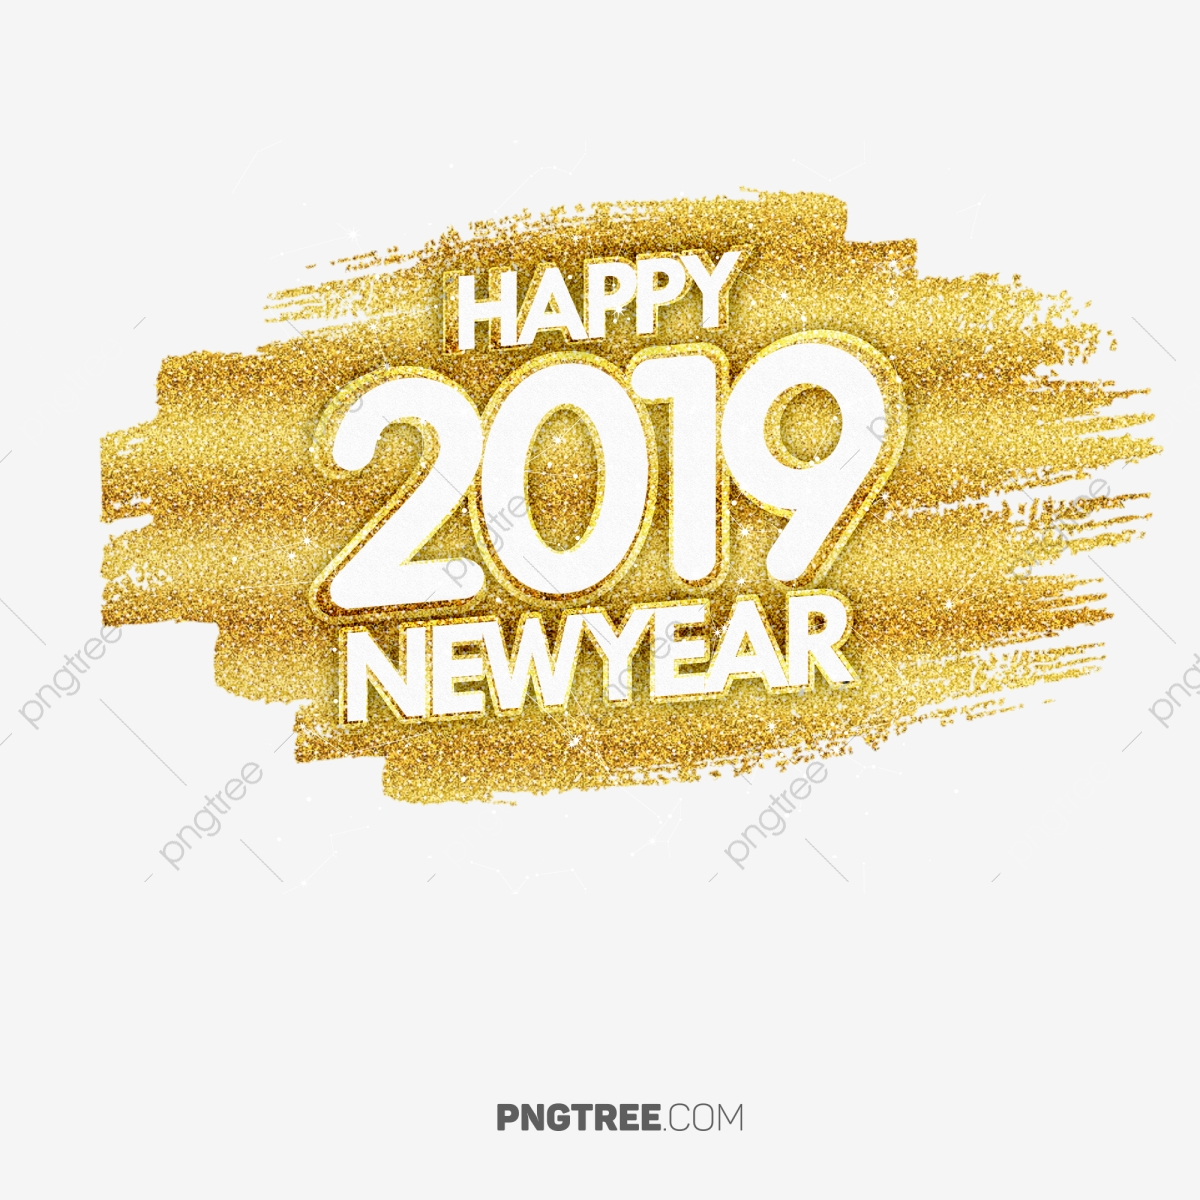 2019 Happy Newyear Golden Color, New Year, Happy New Year, 2019 PNG.